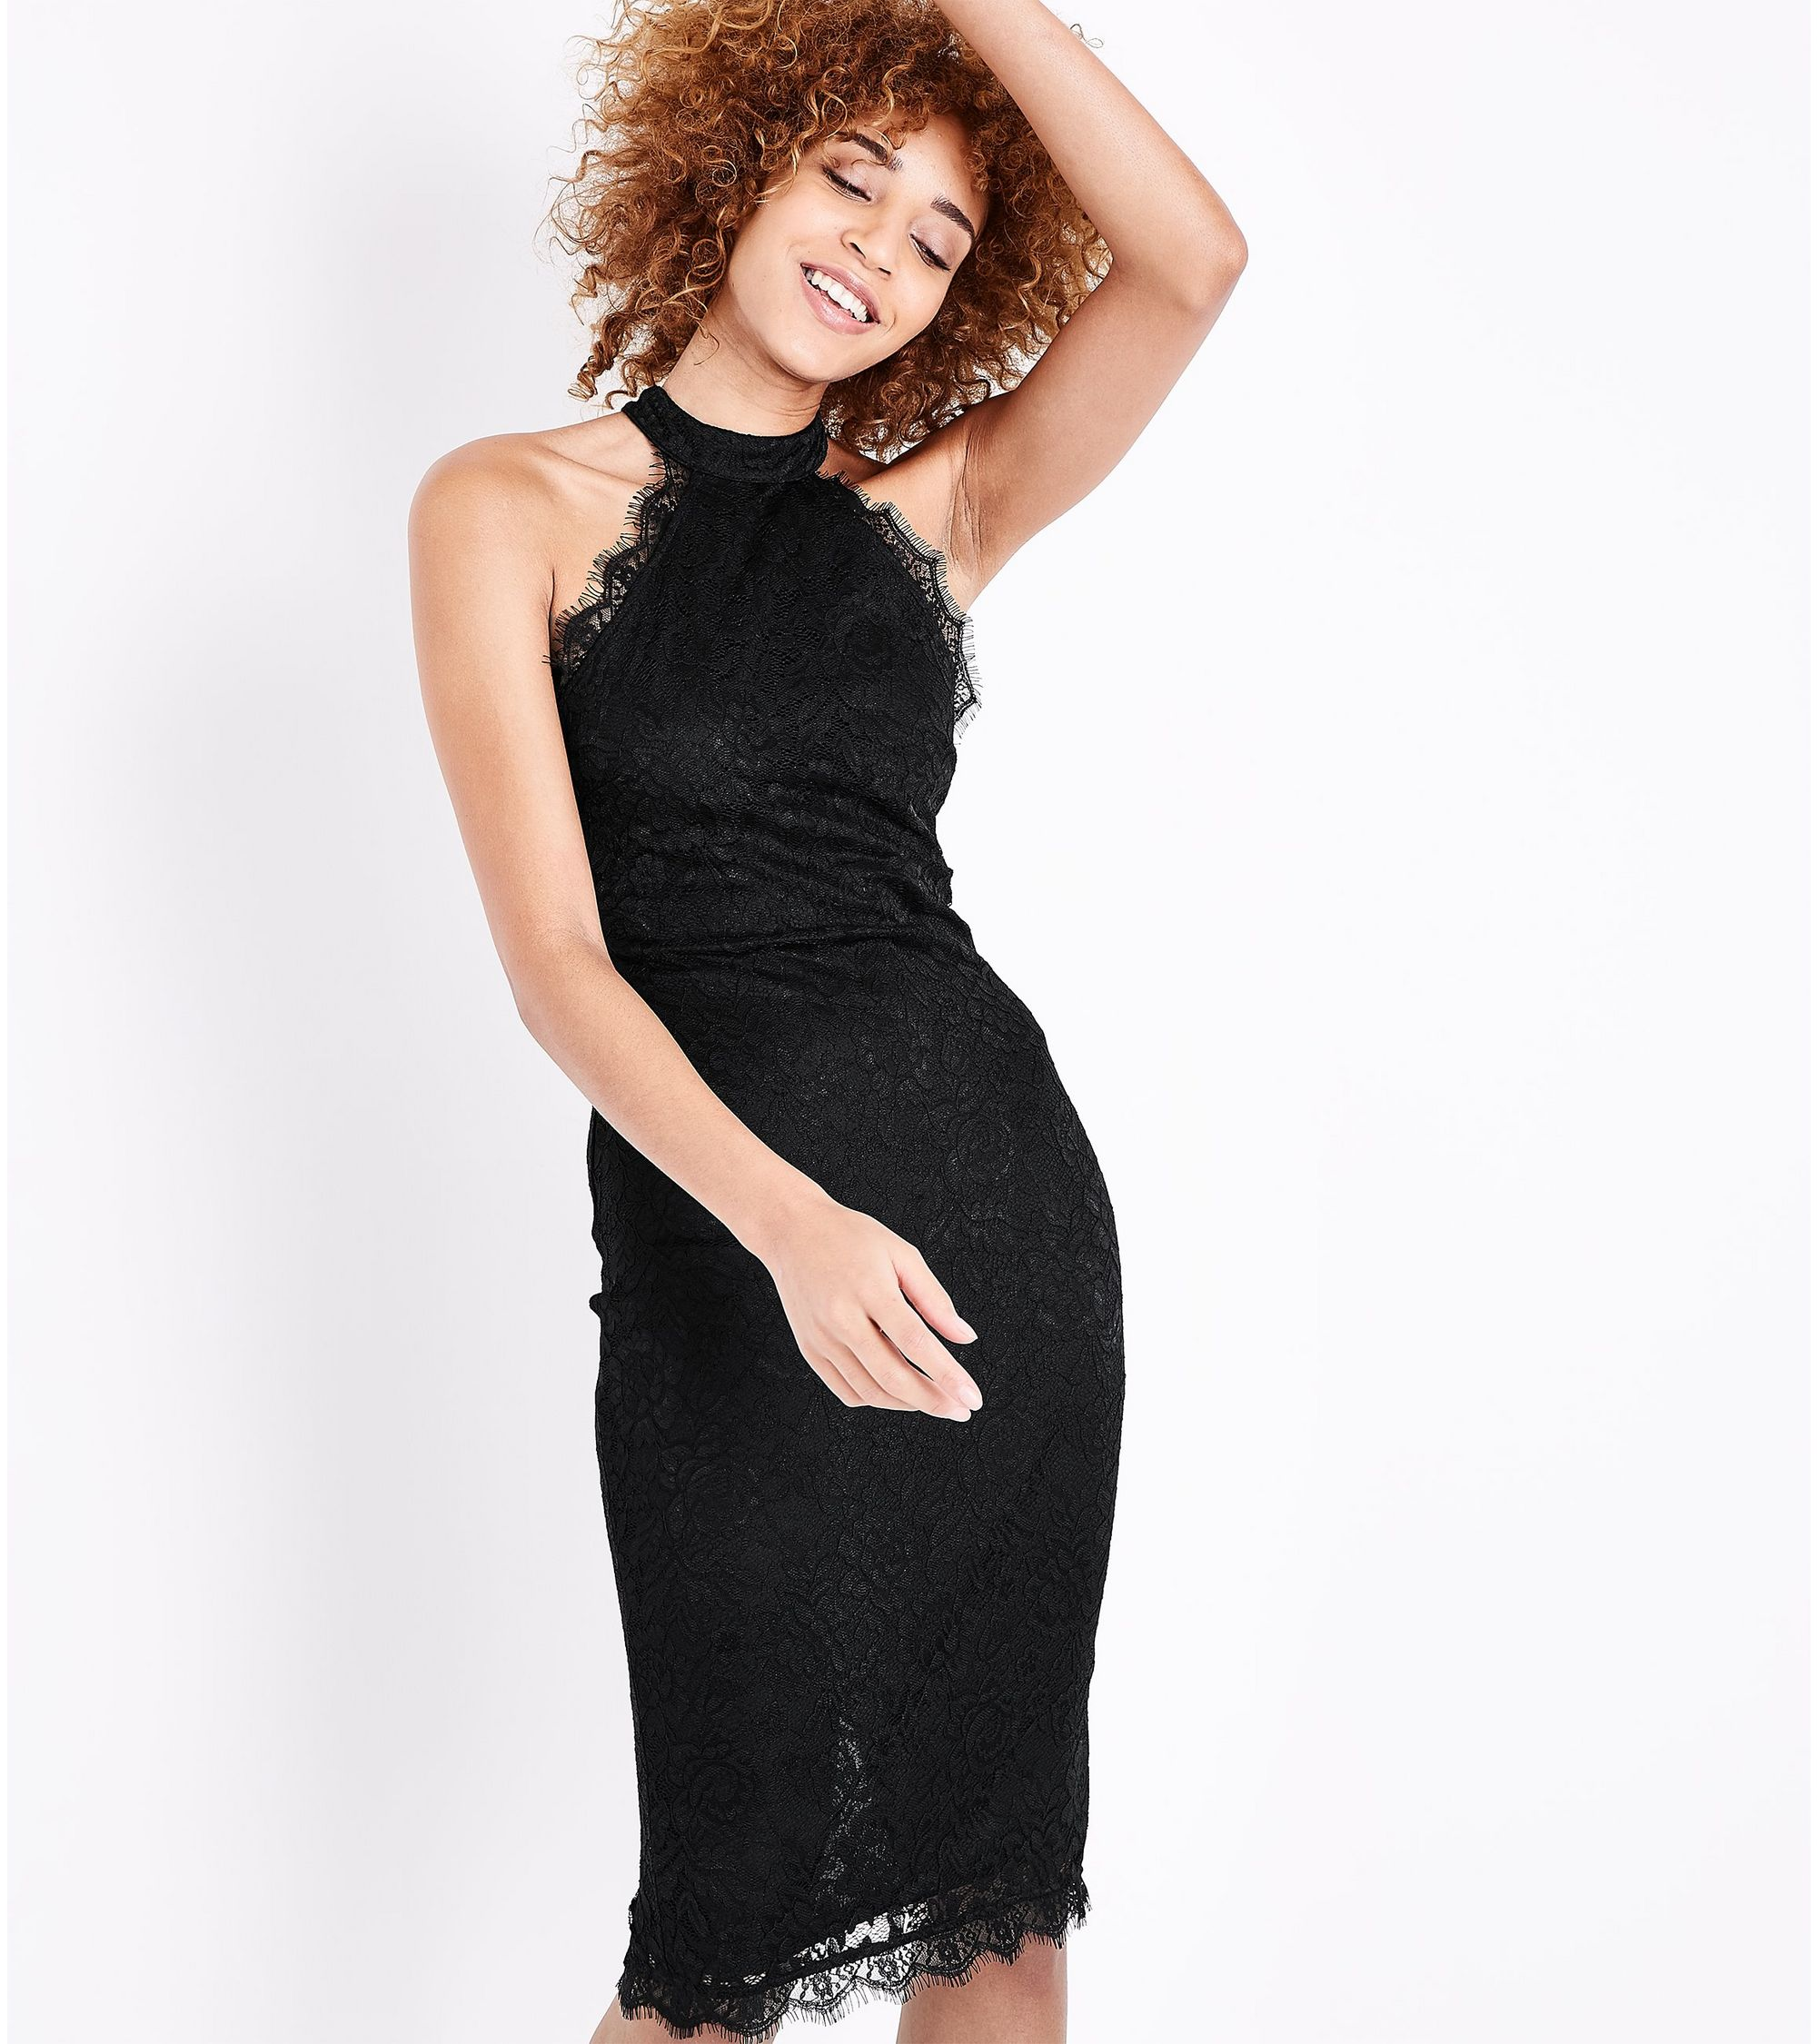 b6ccdb92edb New Look High Neck Black Lace Dress - Gomes Weine AG